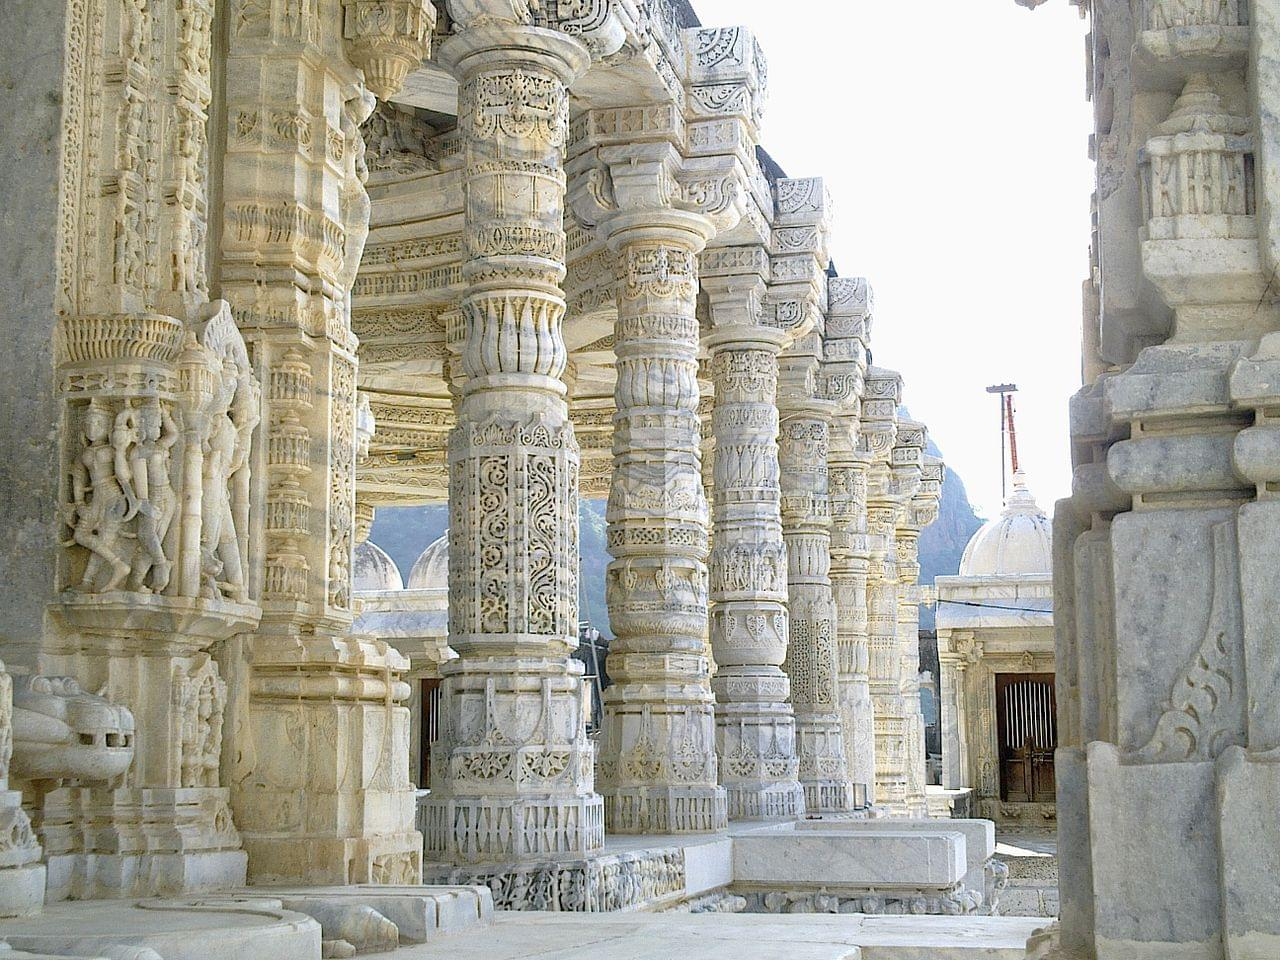 Blissful-Mount-Abu-Tour-Package-with-Udaipur-&-Jodhpur-JustWravel-1597391067-5.jpg